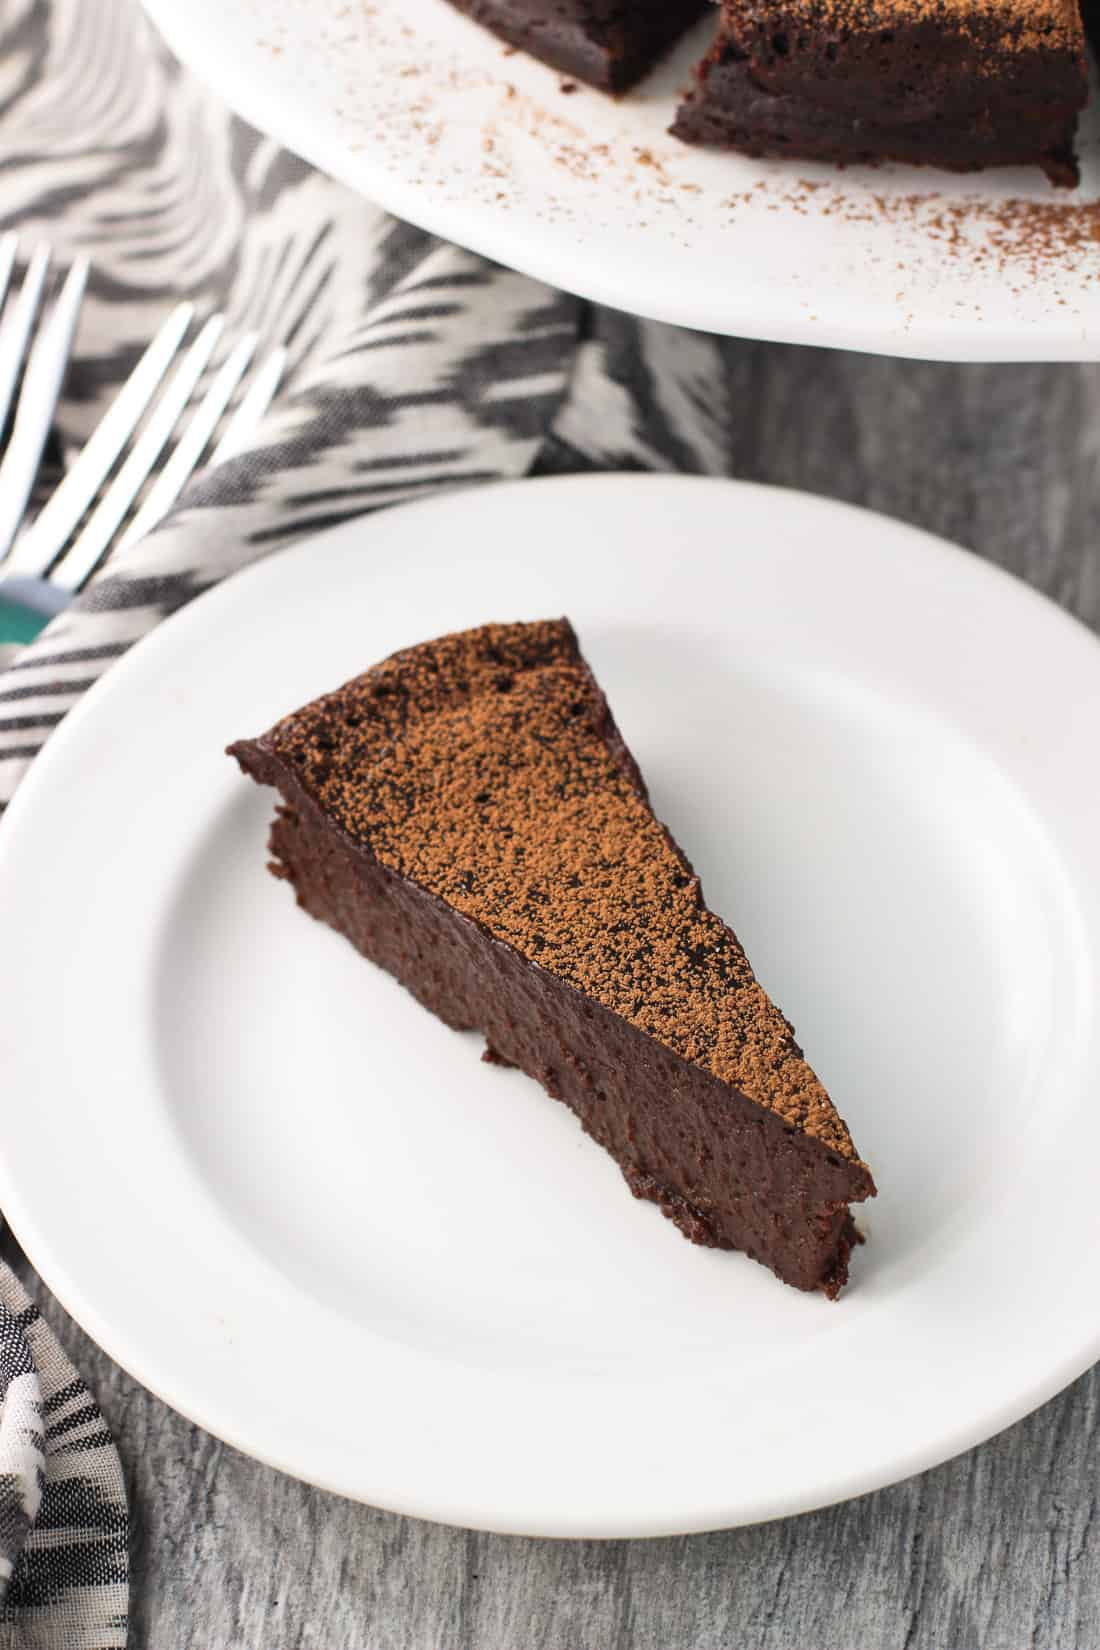 Flourless stout chocolate cake is dense and fudgy, and would make a delicious dessert for a crowd! Stout beer and espresso powder are added to the batter to enhance the rich chocolate flavor. Top with powdered sugar, cocoa powder, or whipped cream.